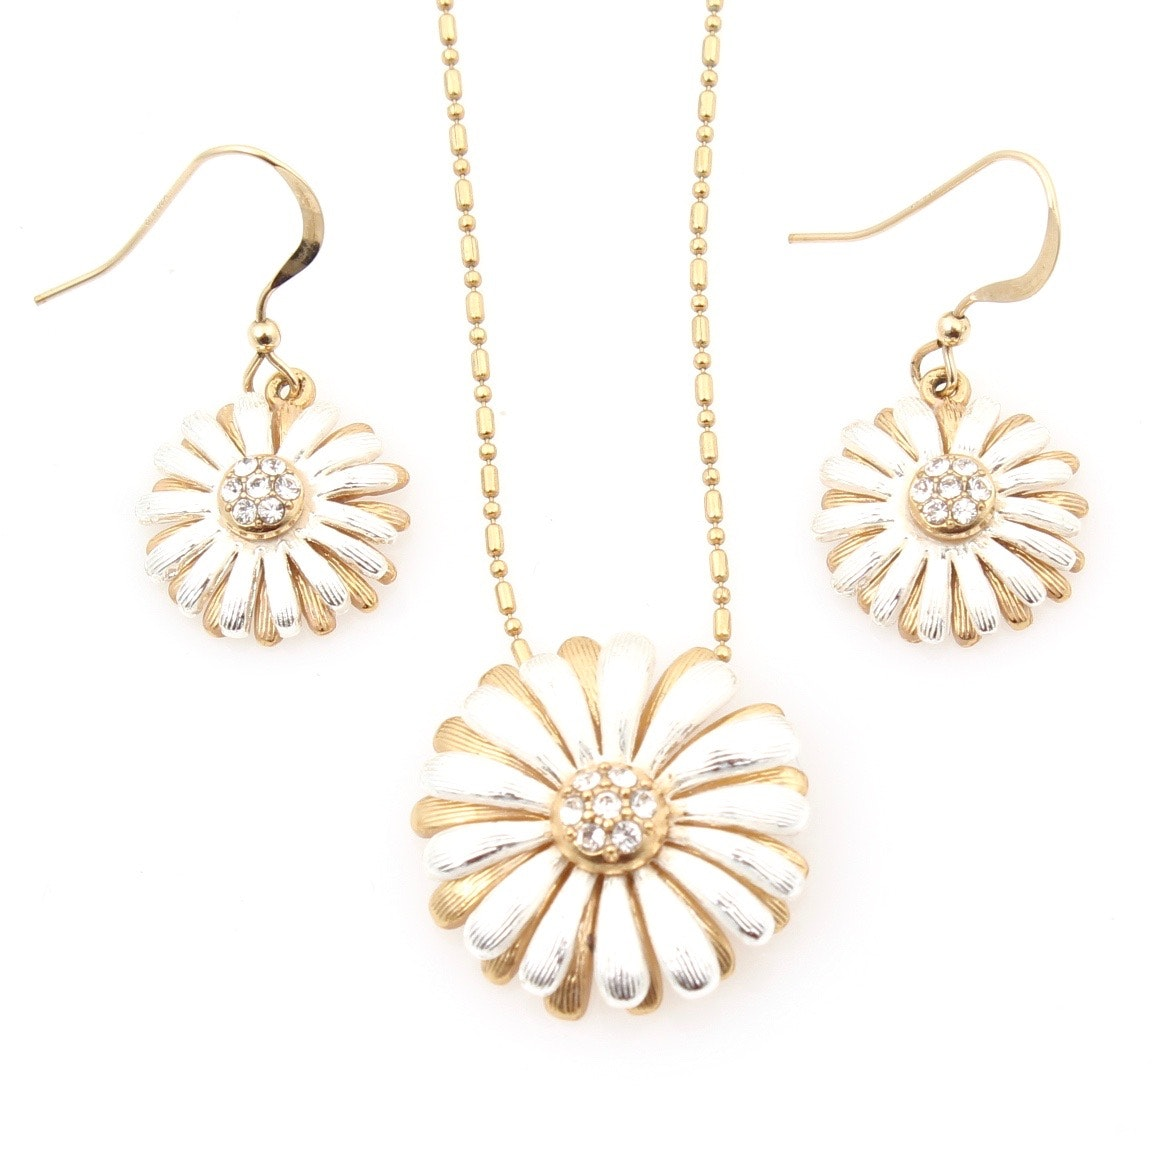 Brighton Daisy Pendant Necklace and Earrings